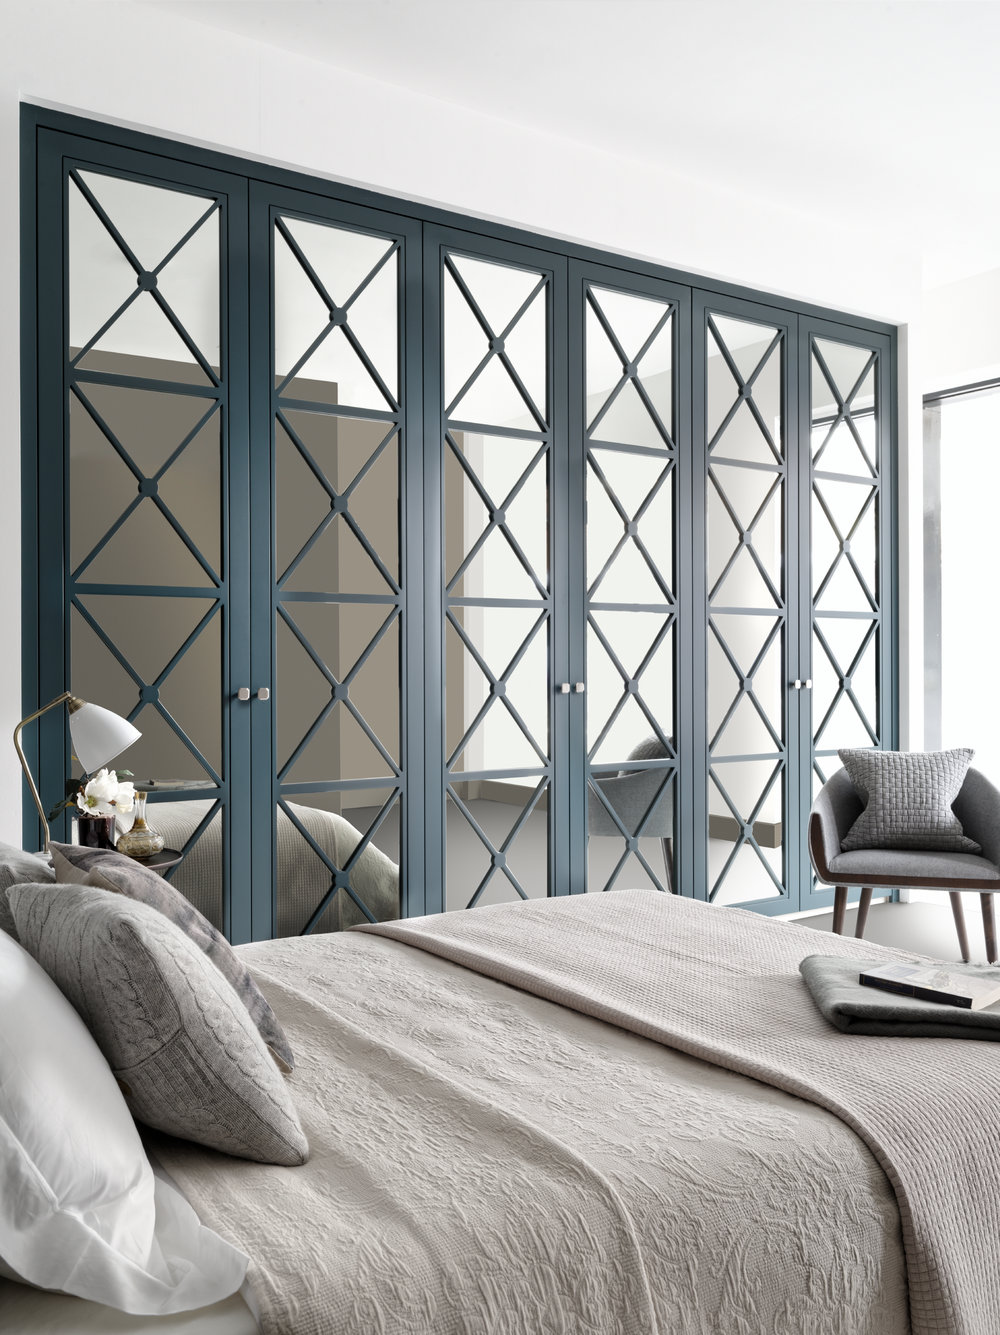 AfterEight Castille Doors with Silver Mirror